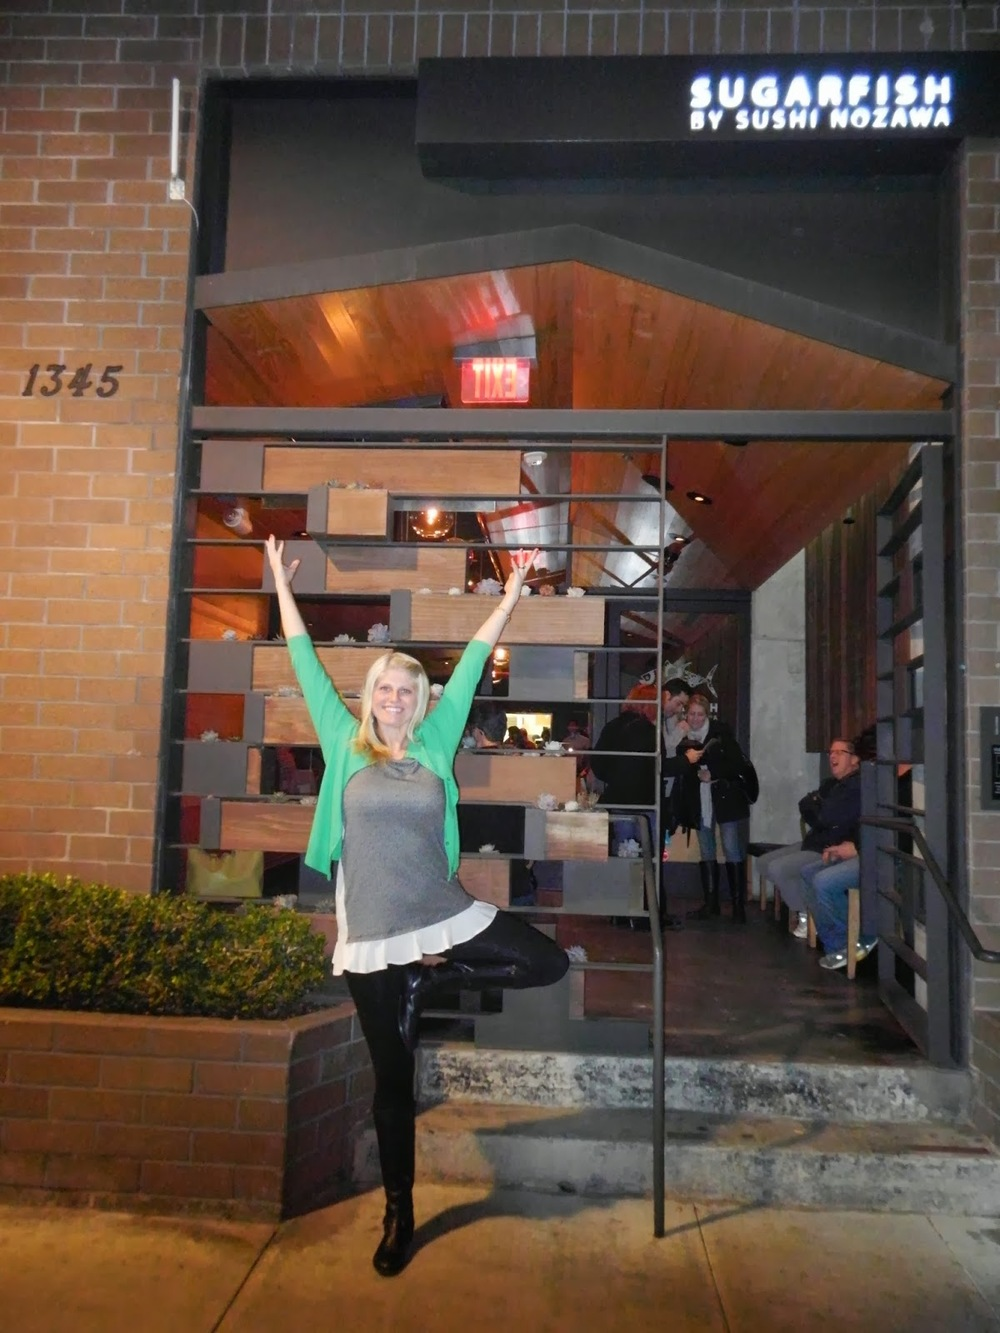 Saluting to Sugarfish with my tree pose.